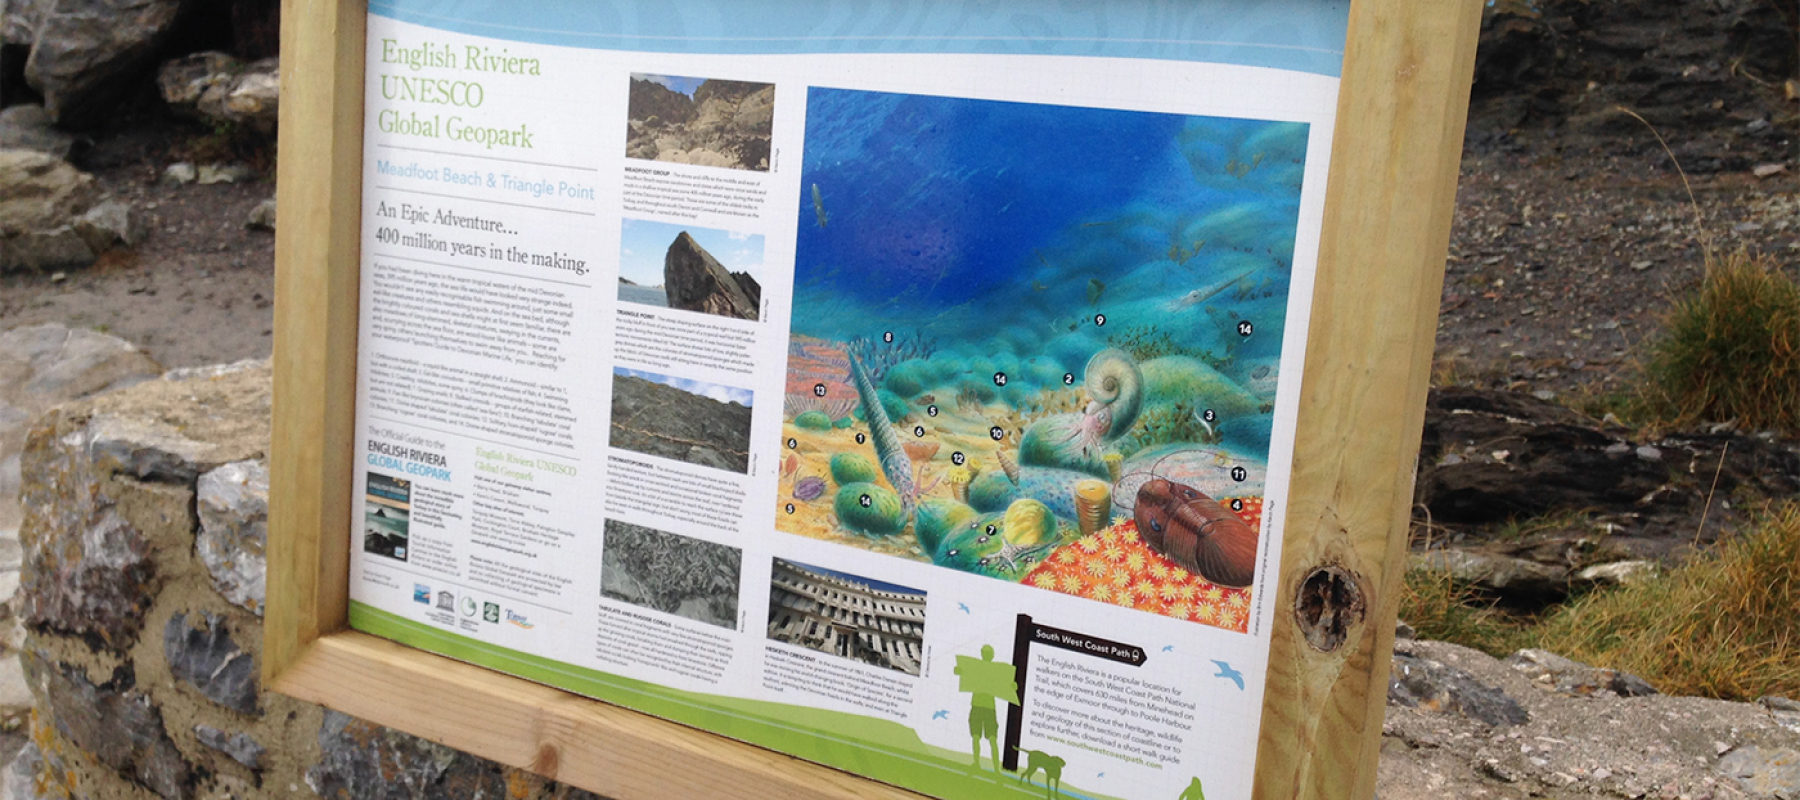 Geopark interpretation boards on display in Torbay